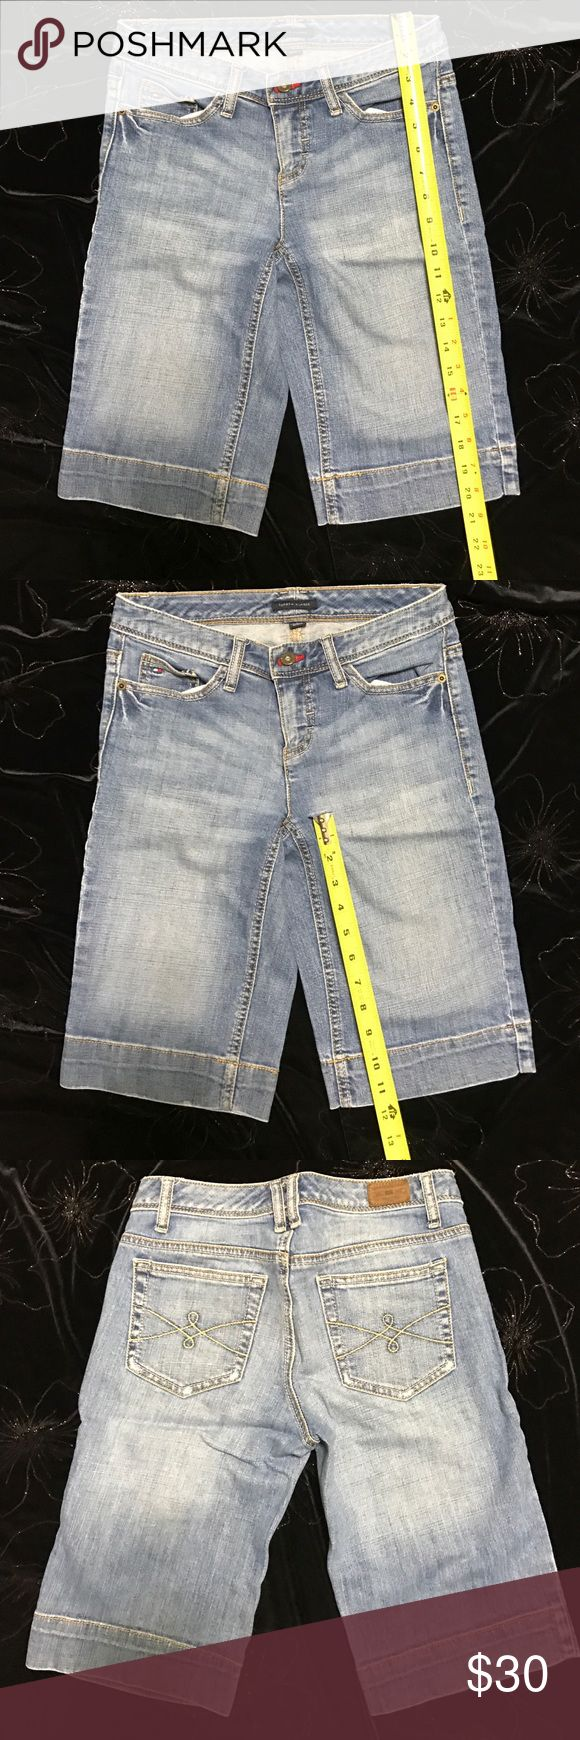 """🌎Tommy Hilfiger Shorts Good Condition. Made in Mauritius. 98% cotton 2%Lycra. Inseam 11"""". Come from clean house. Tommy Hilfiger Shorts Jean Shorts"""